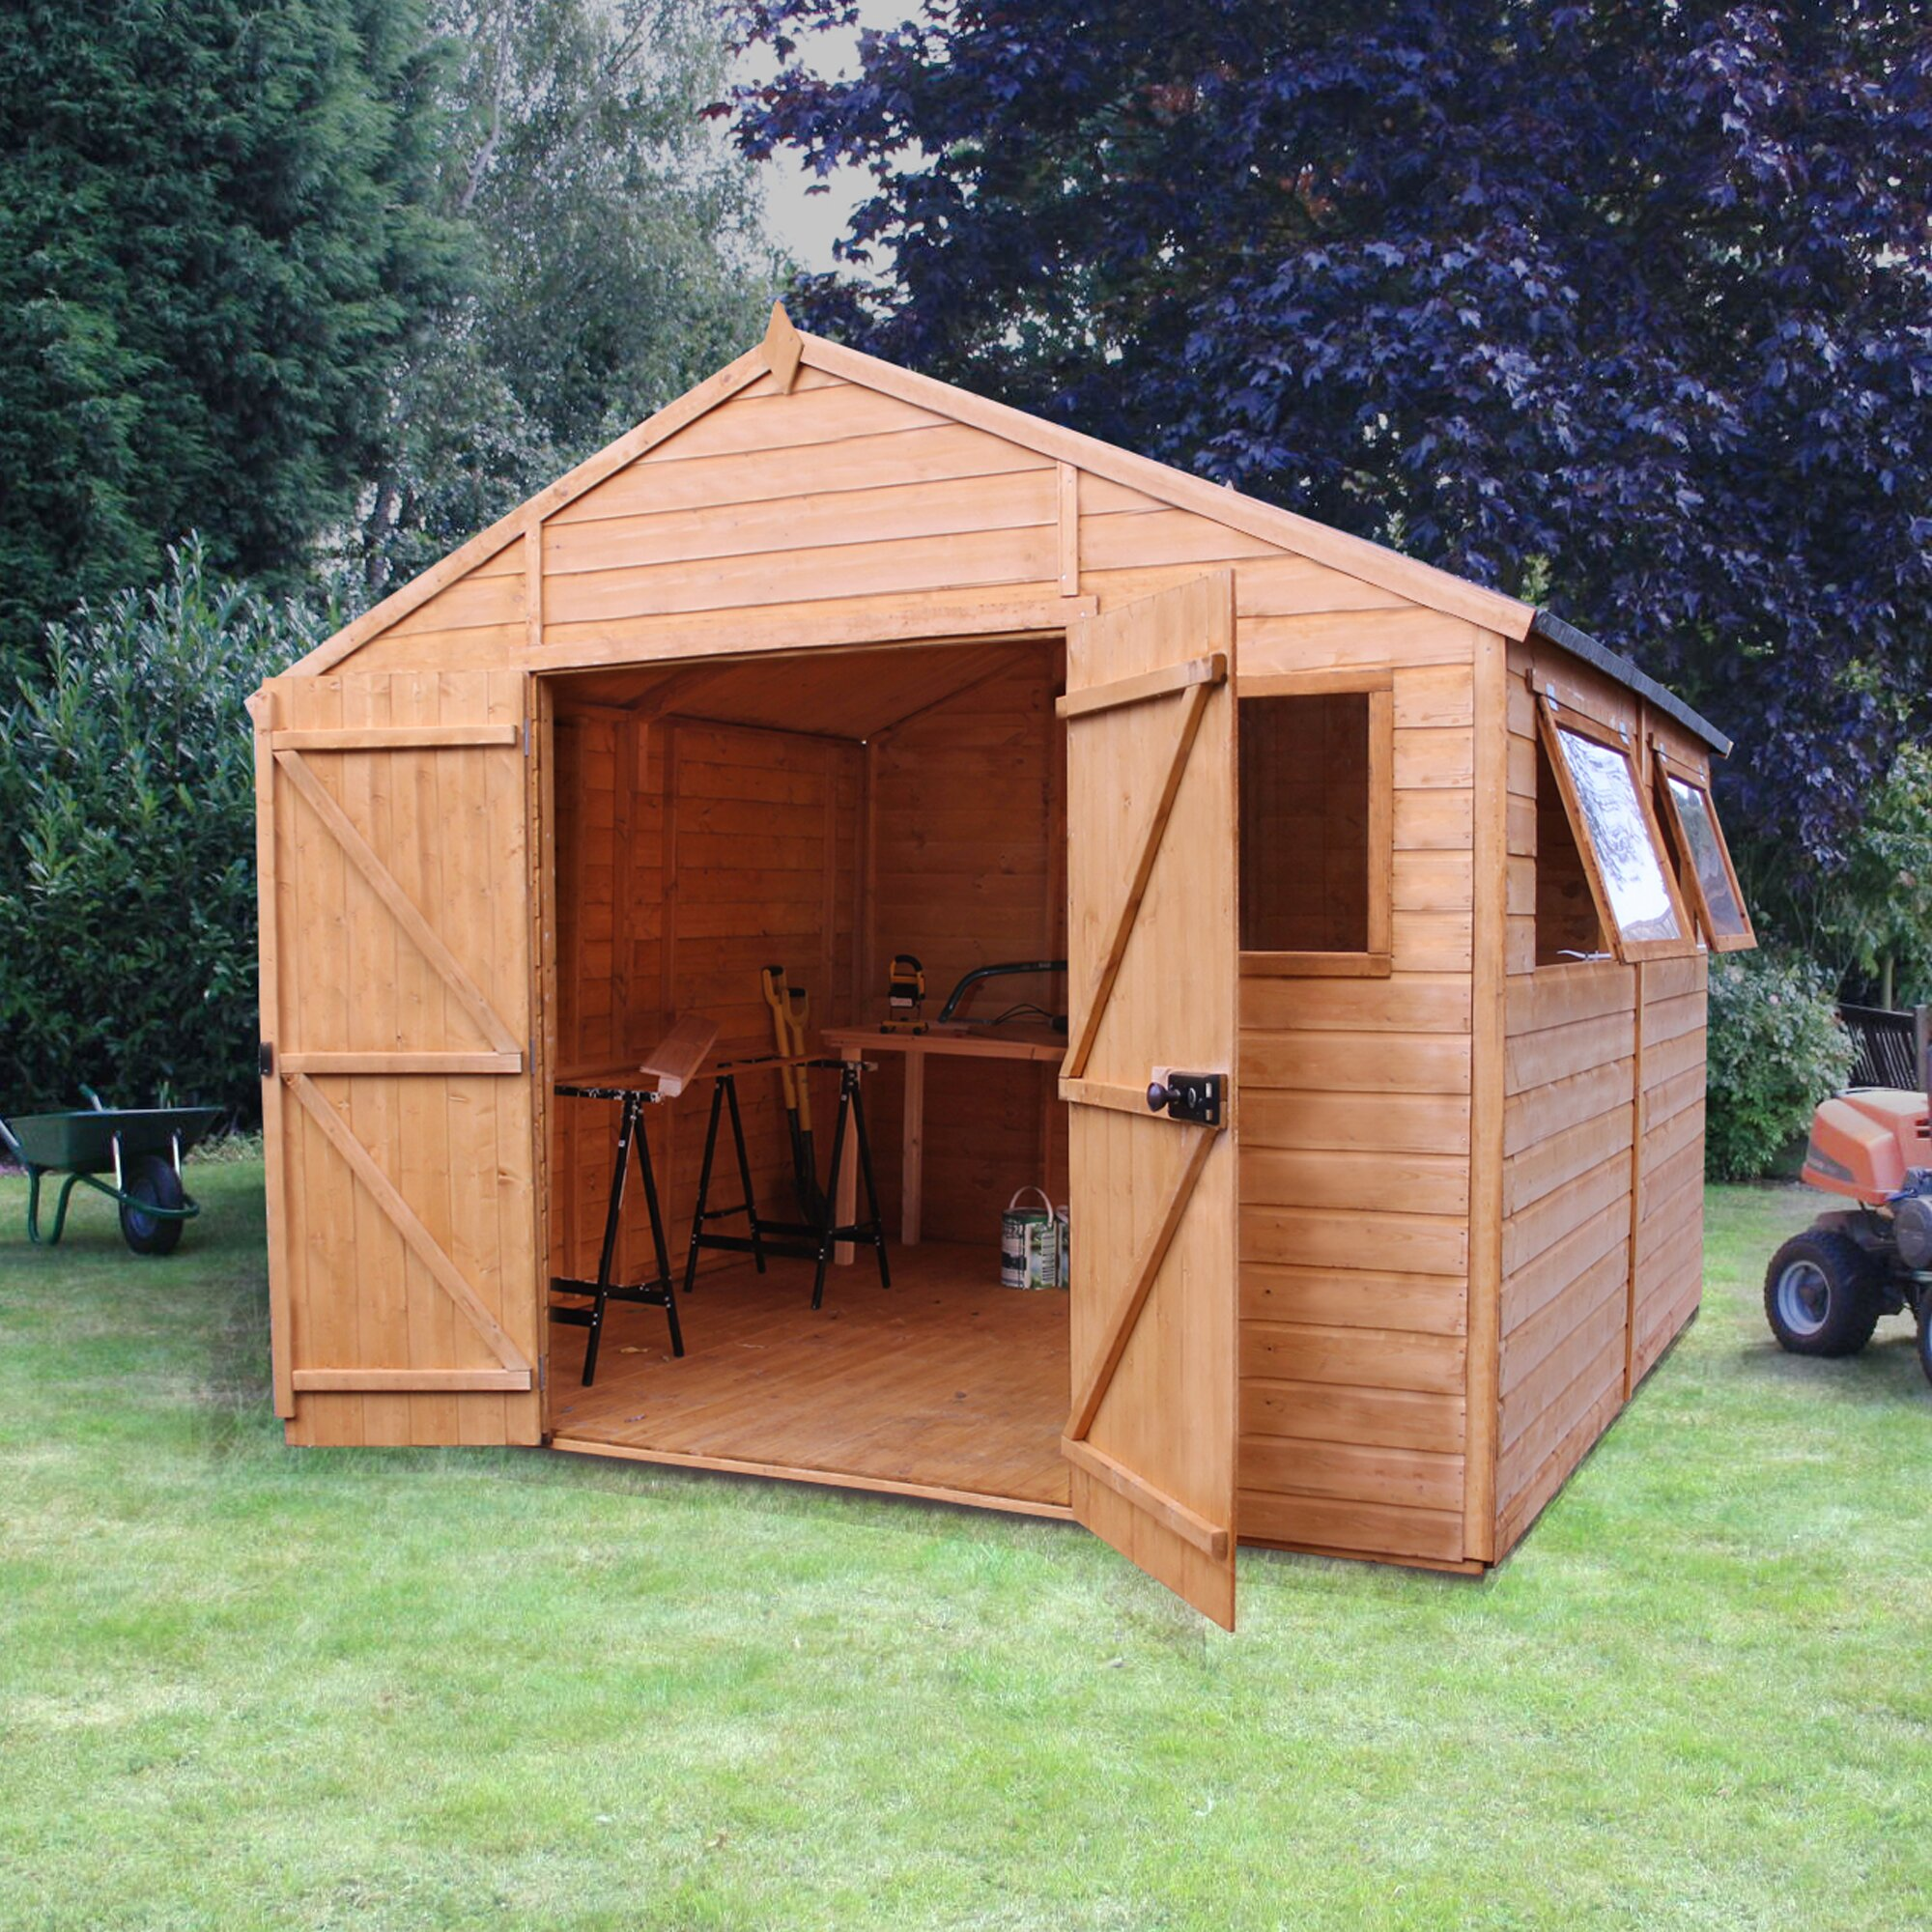 Mercia Garden Products 10 x 10 Wooden Shiplap Storage Shed ...